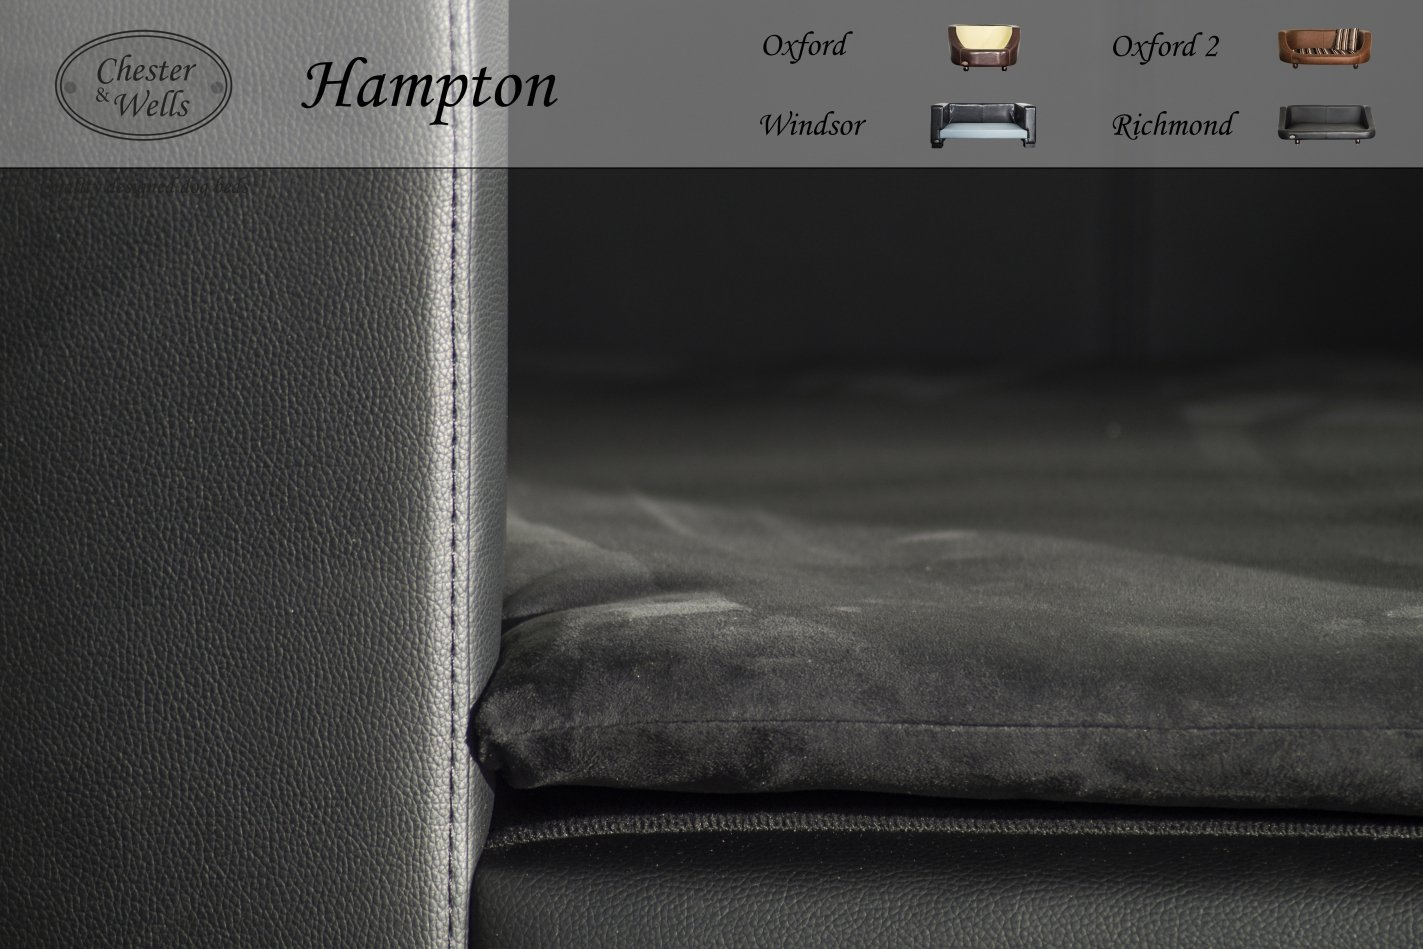 Amazon.com: Chester and Wells Hampton Dog Beds, Large, Black ...